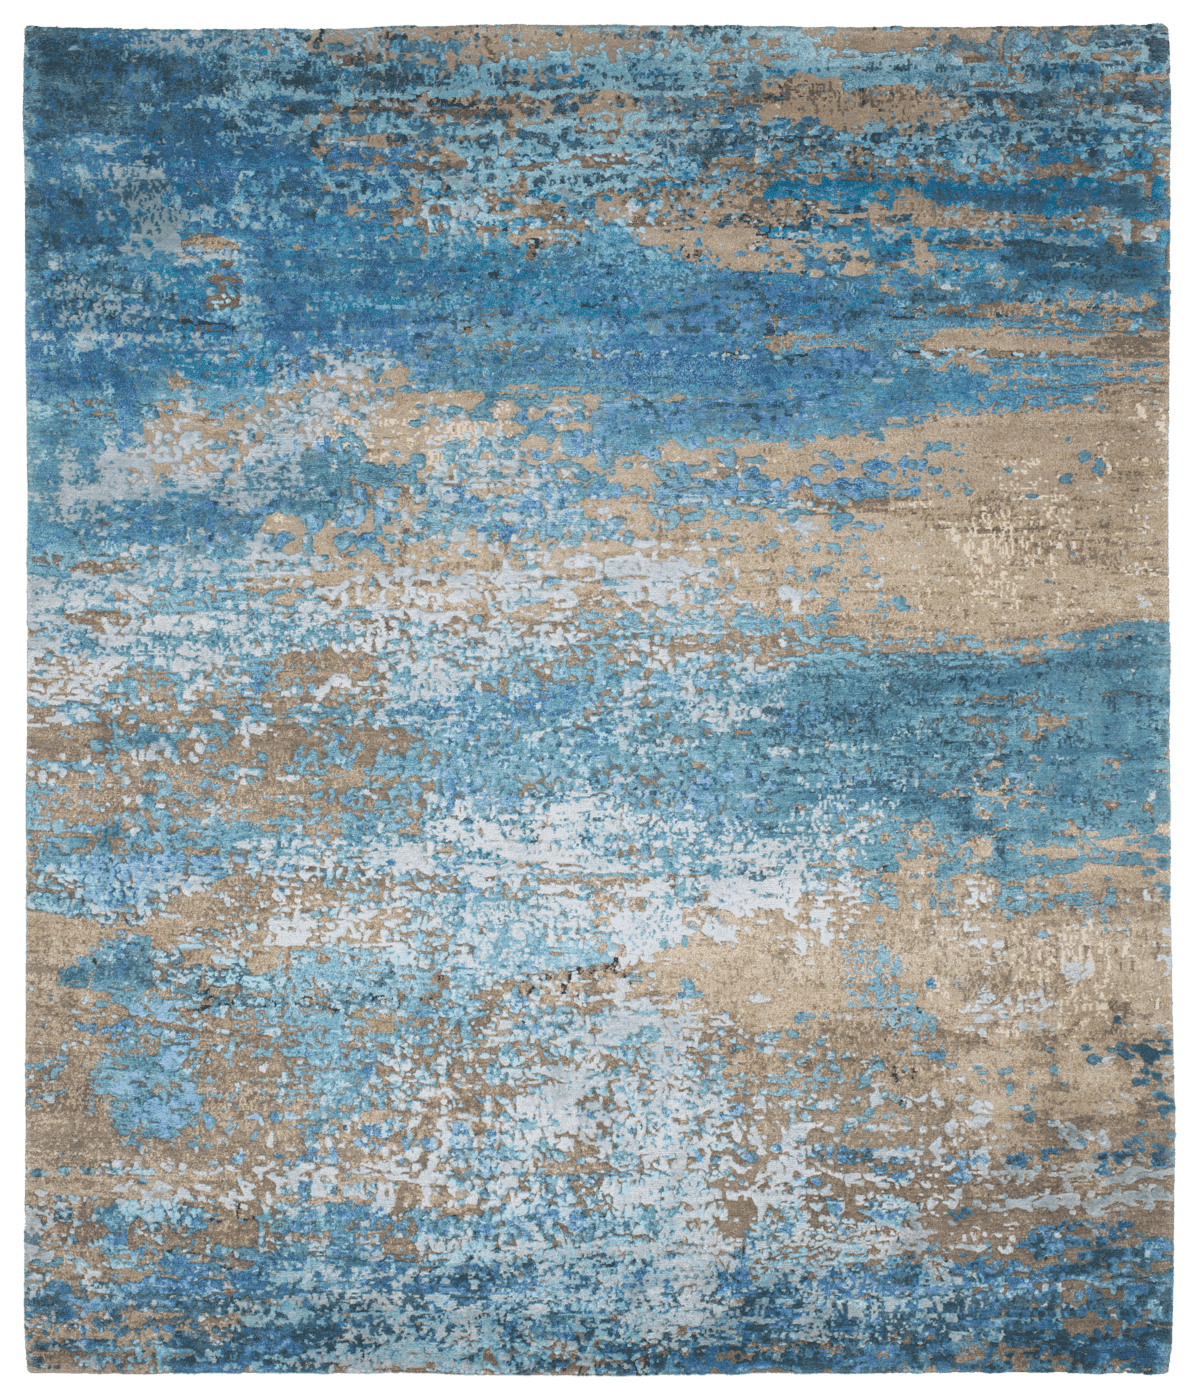 Artwork Collection Overview Jan Kath In 2020 Rugs Carpet Rugs On Carpet